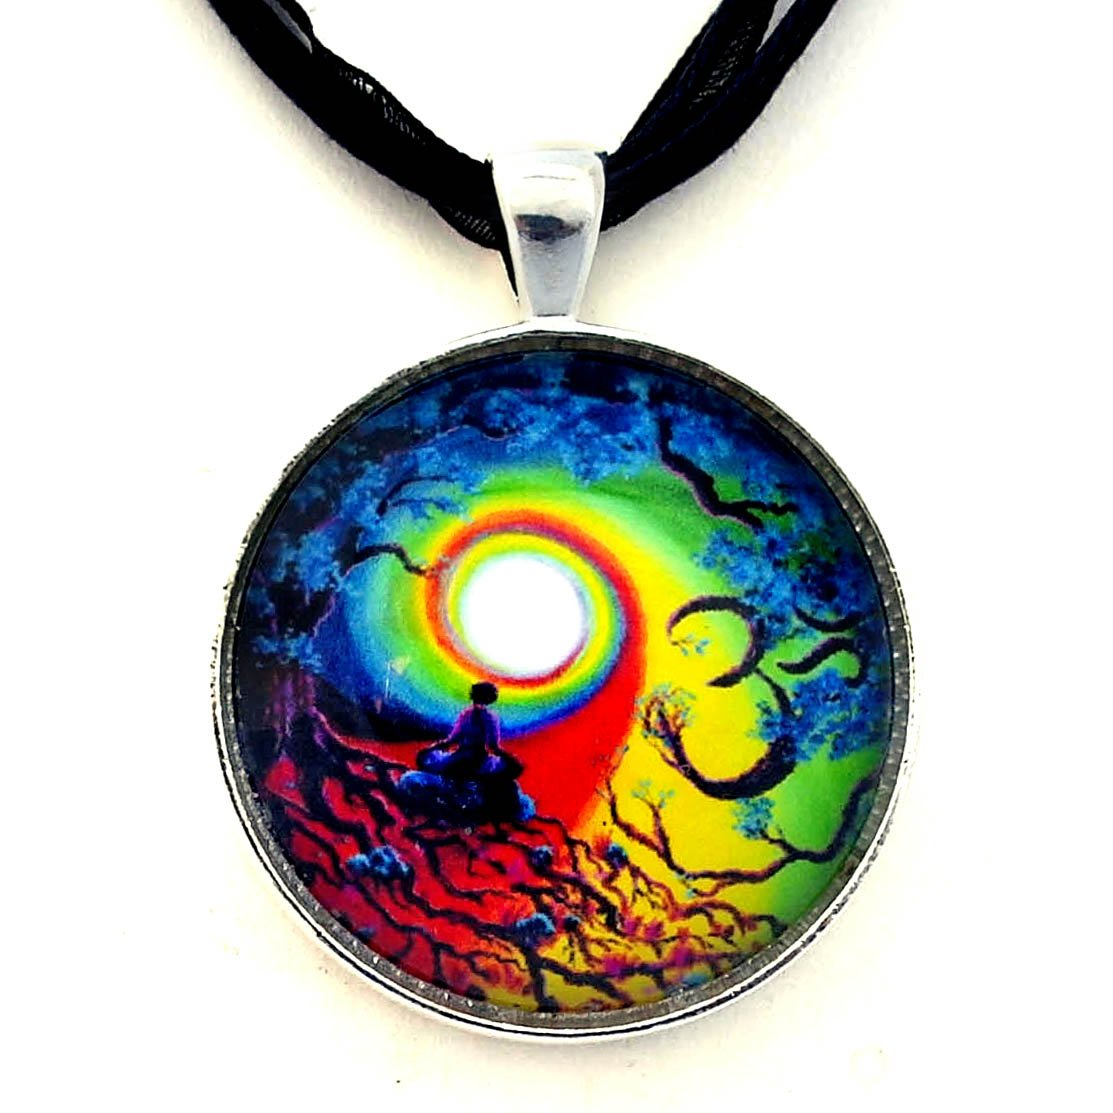 Om Chakra Tree of Life Meditation Handmade Jewelry Necklace (Black Ribbon Necklace)